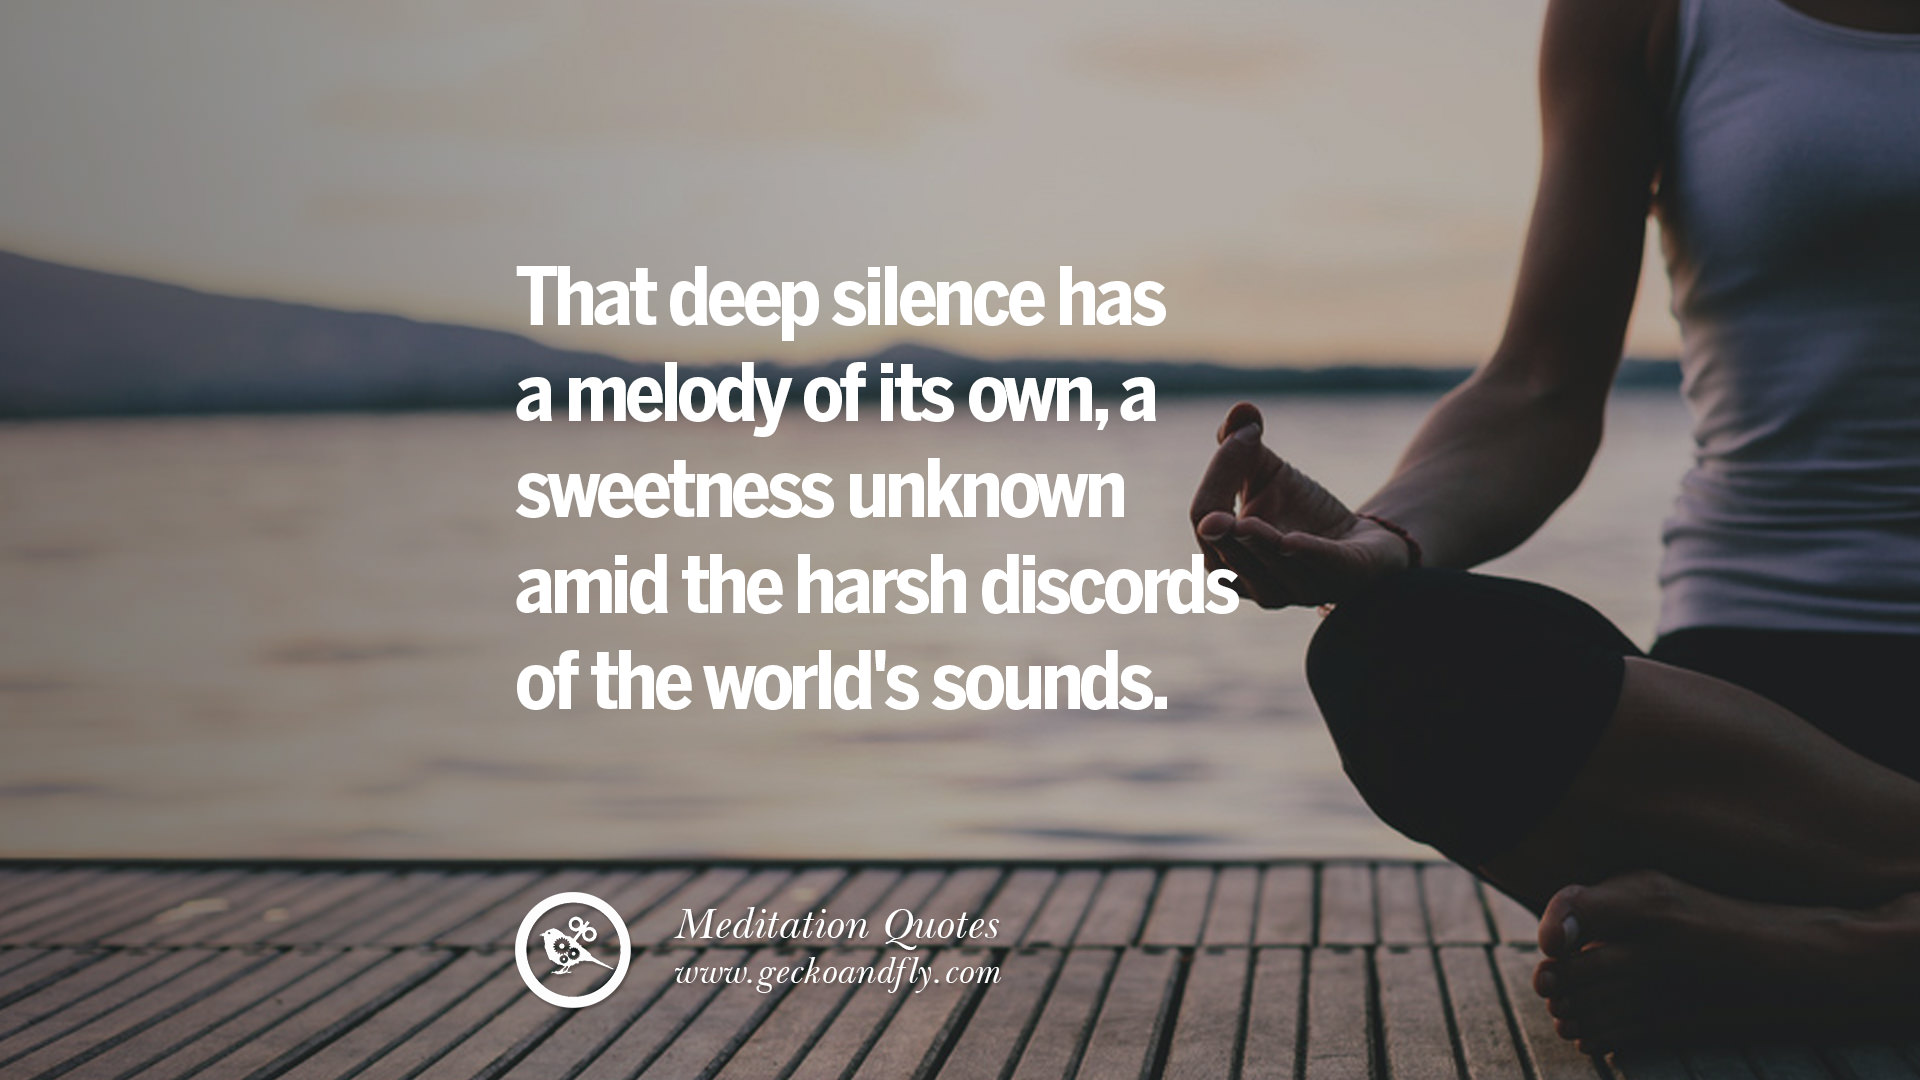 Buddha Quotes Tumblr 36 Famous Quotes On Mindfulness Meditation For Yoga Sleeping And